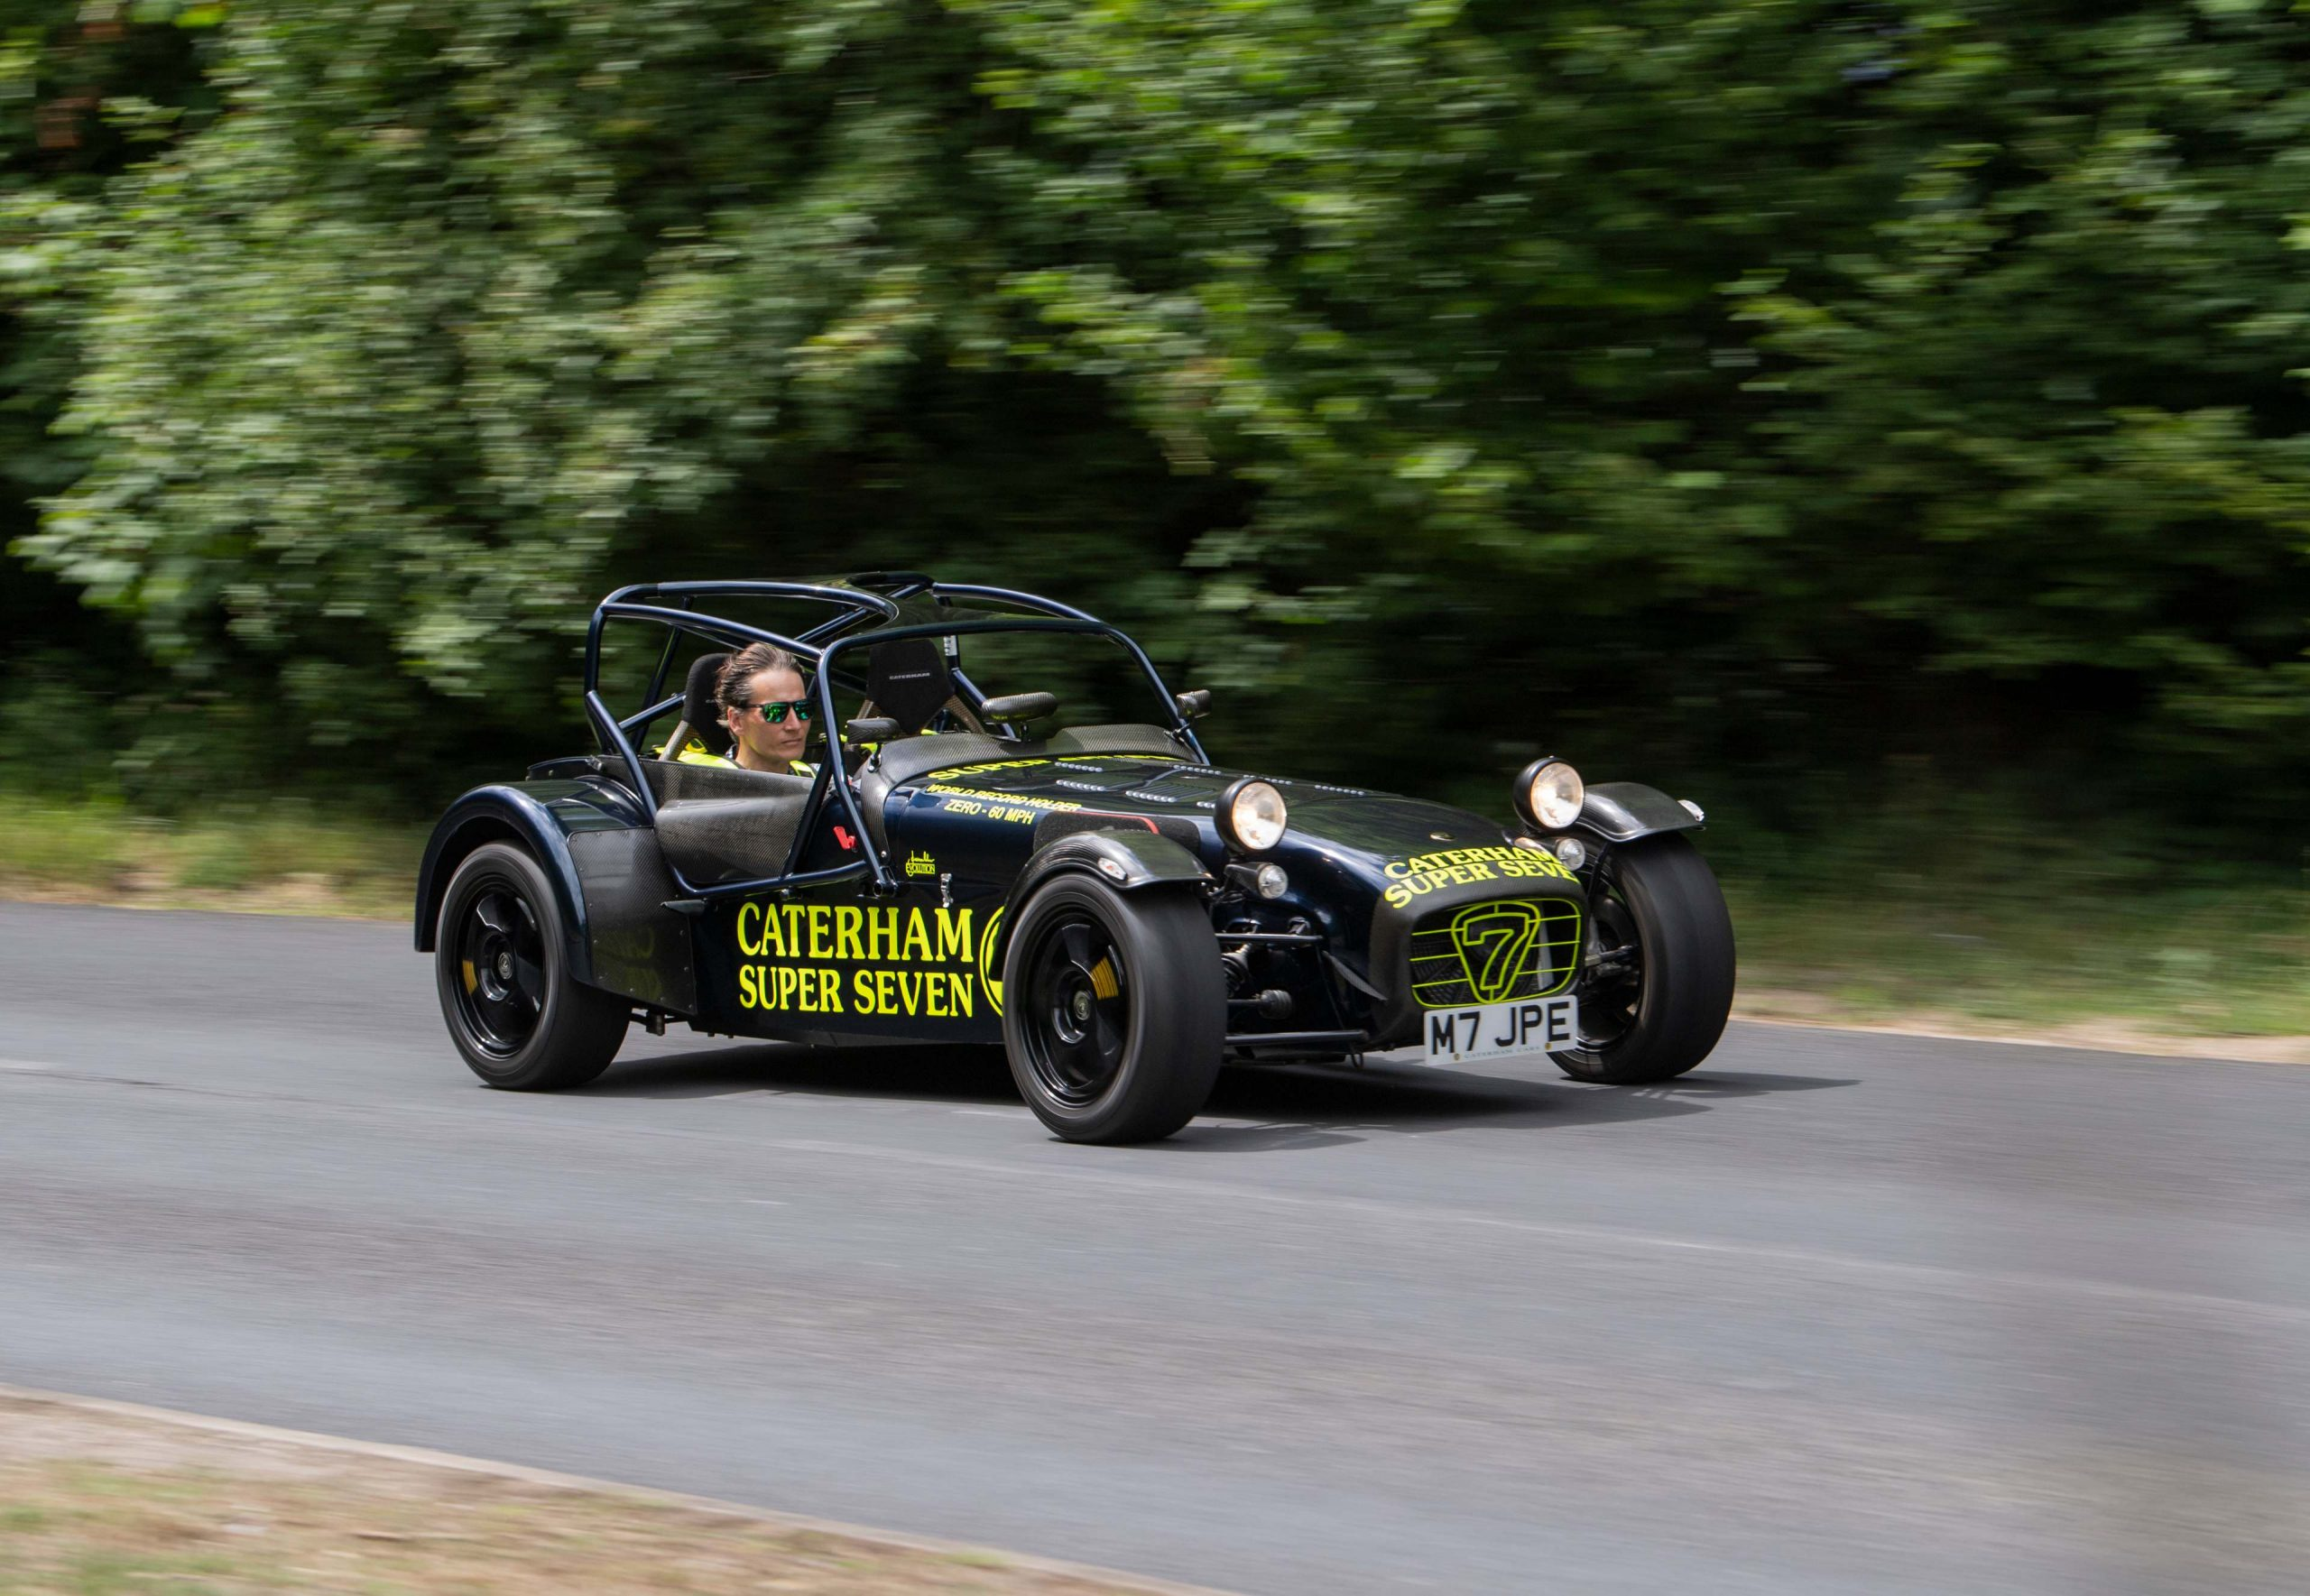 Record breaker! Driving the Caterham 7 JPE is a very fast blast from the past